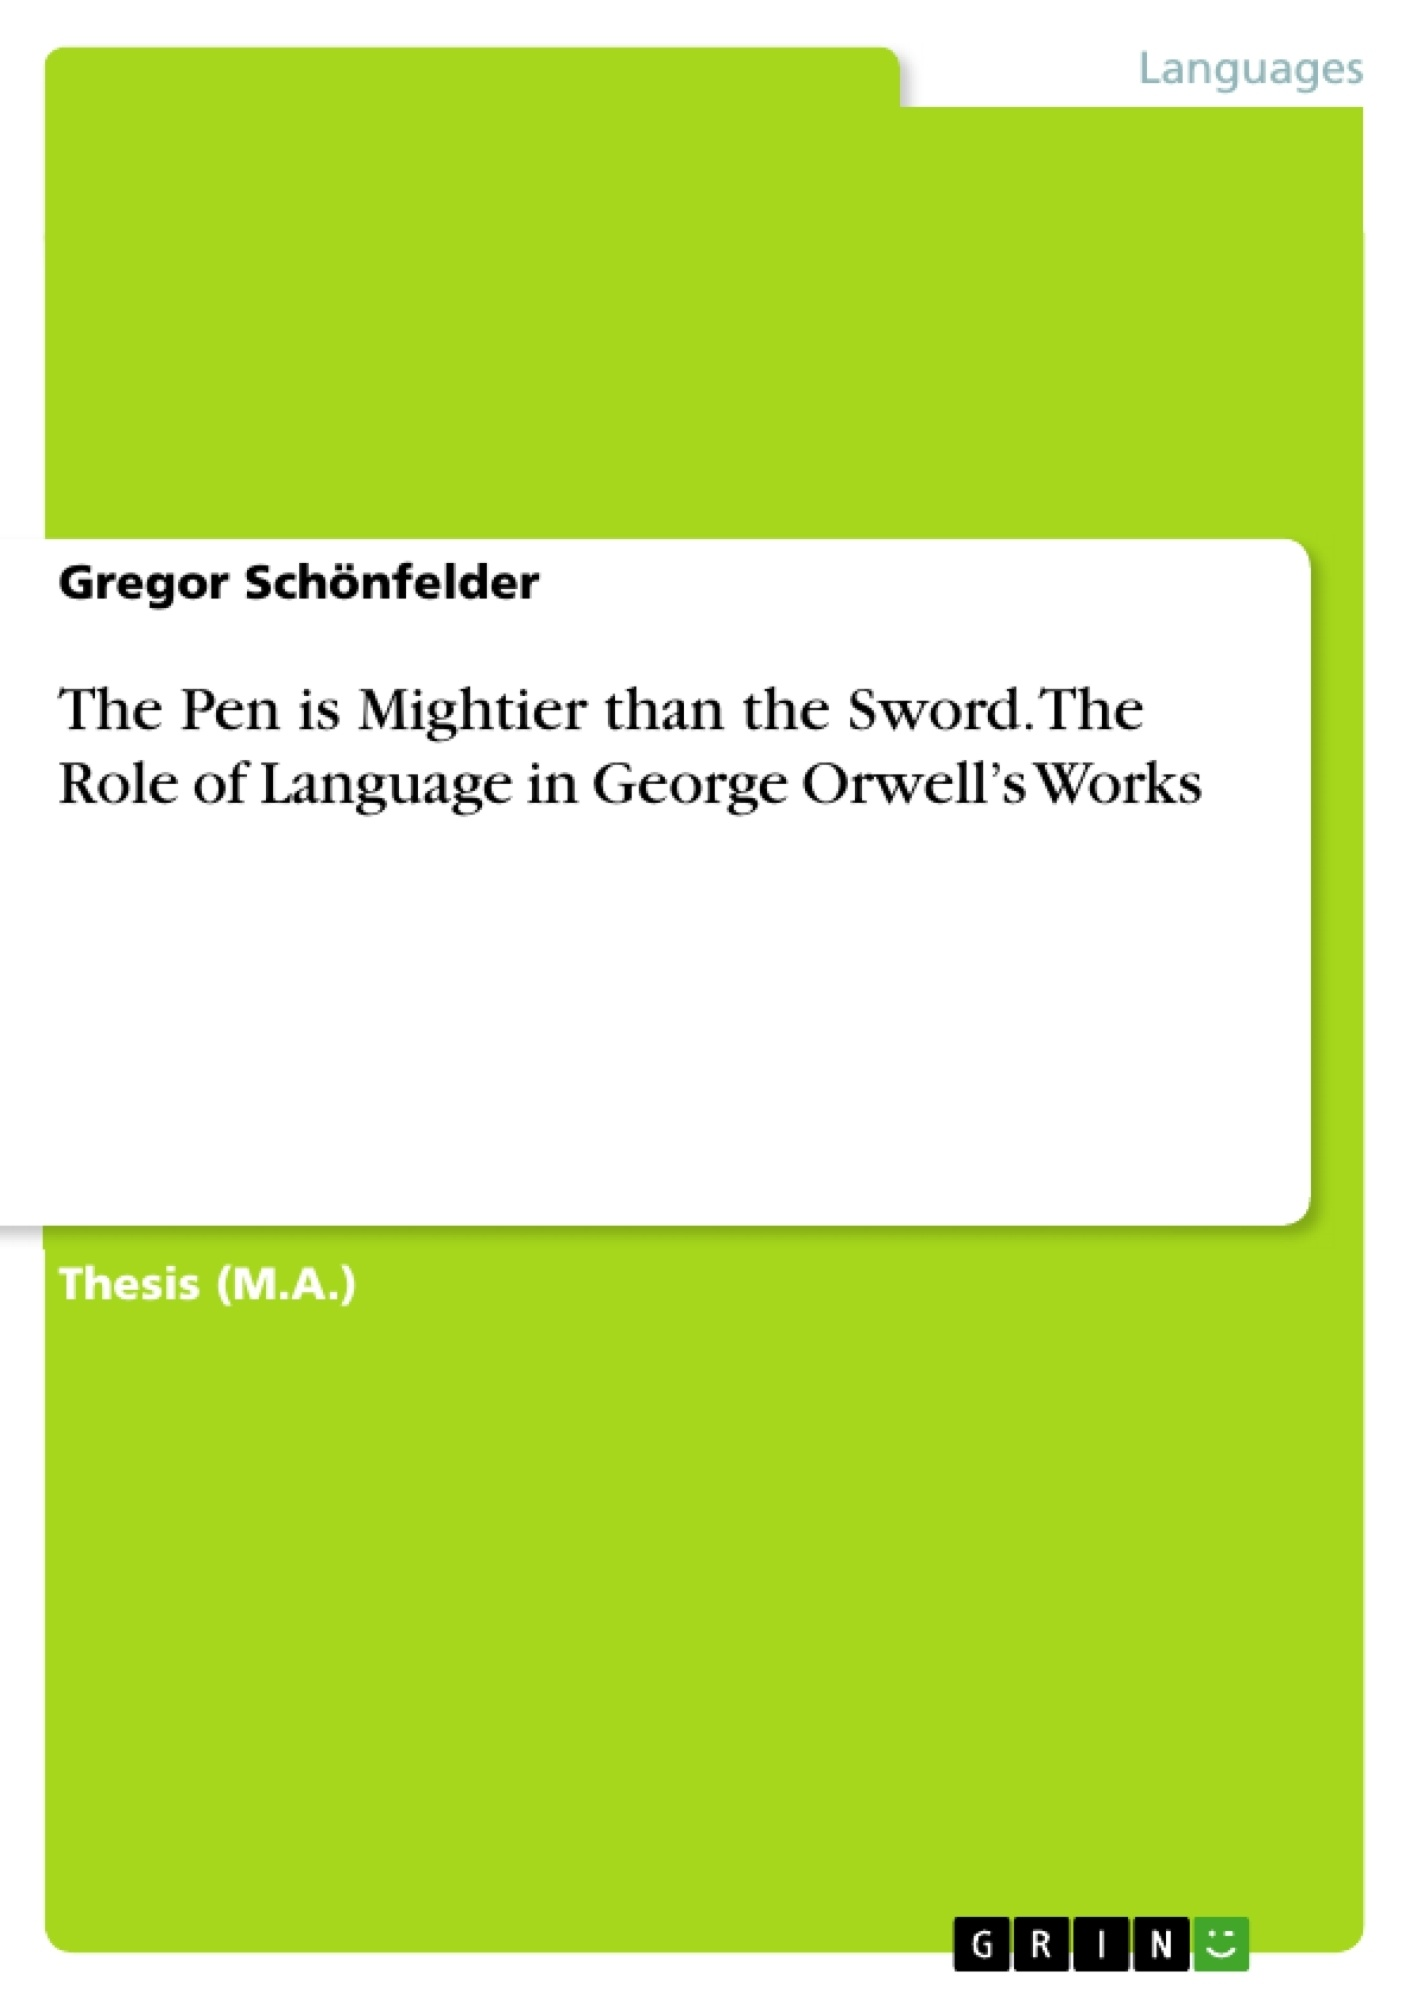 Title: The Pen is Mightier than the Sword. The Role of Language in George Orwell's Works